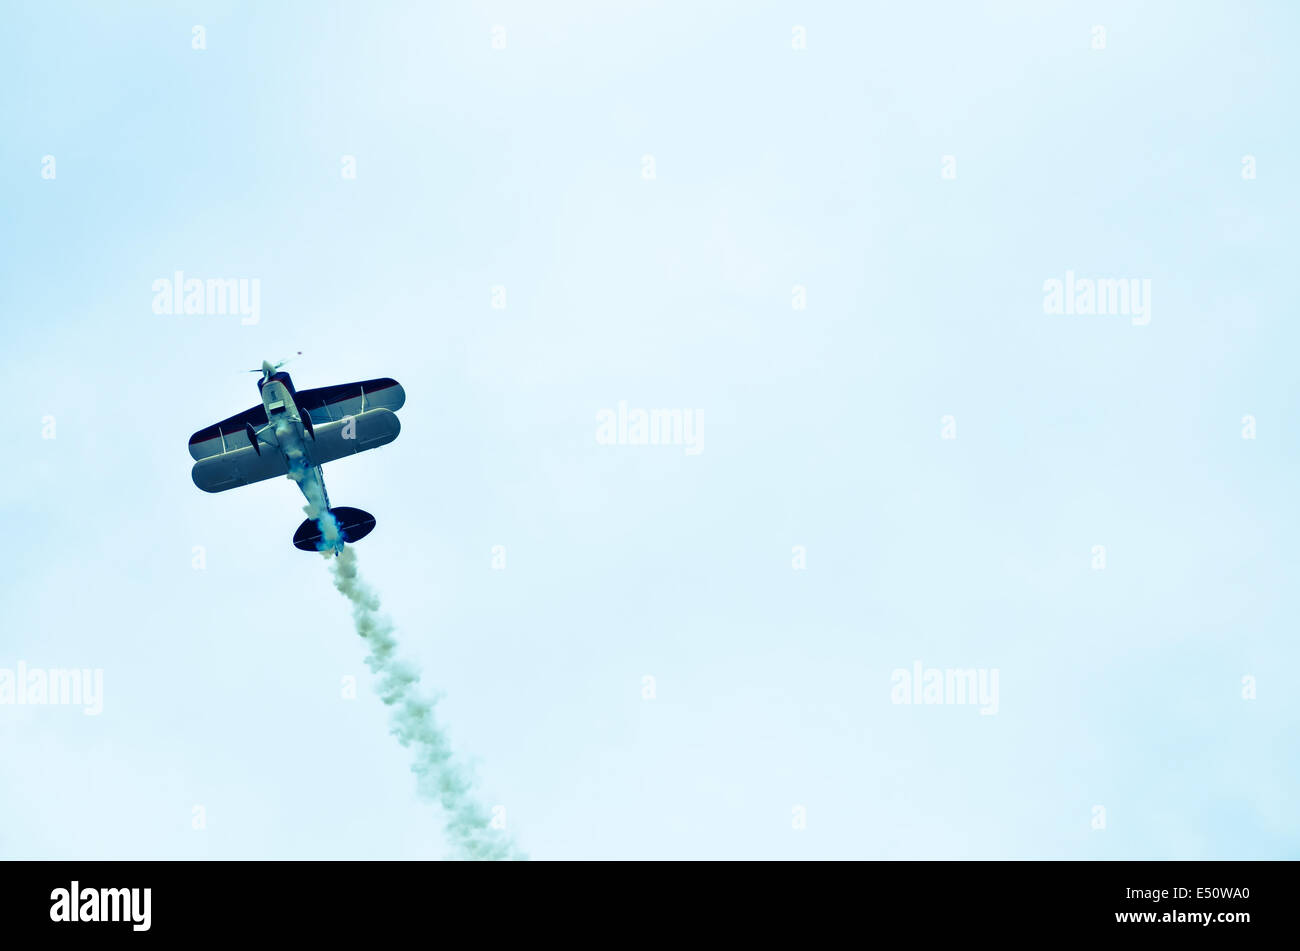 action in the sky during an airshow - Stock Image